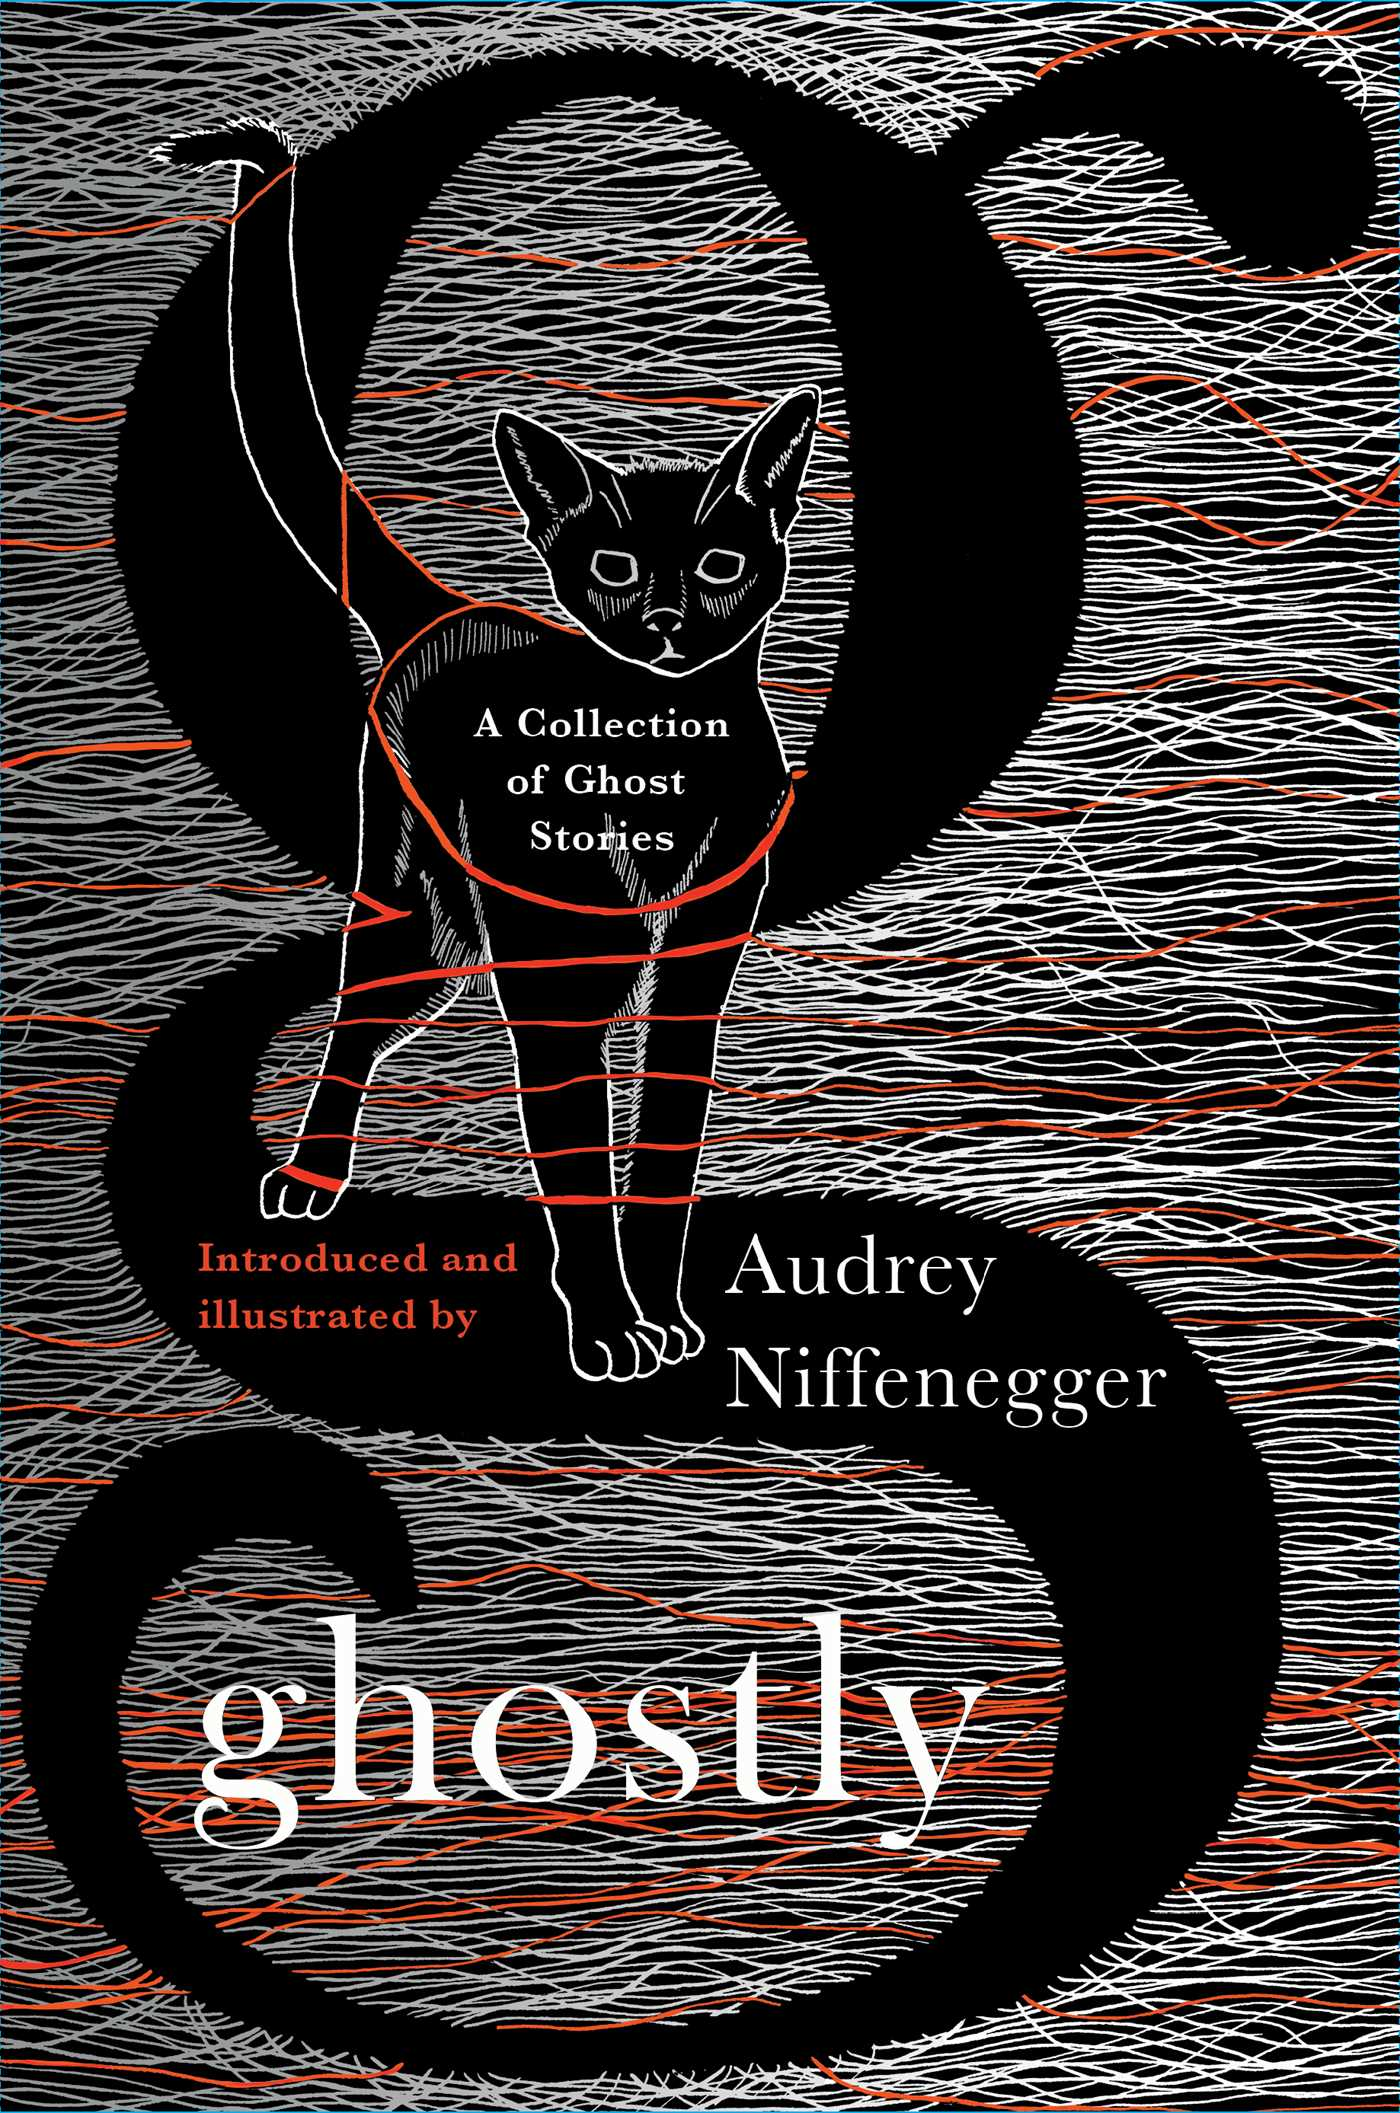 Image result for ghostly audrey niffenegger